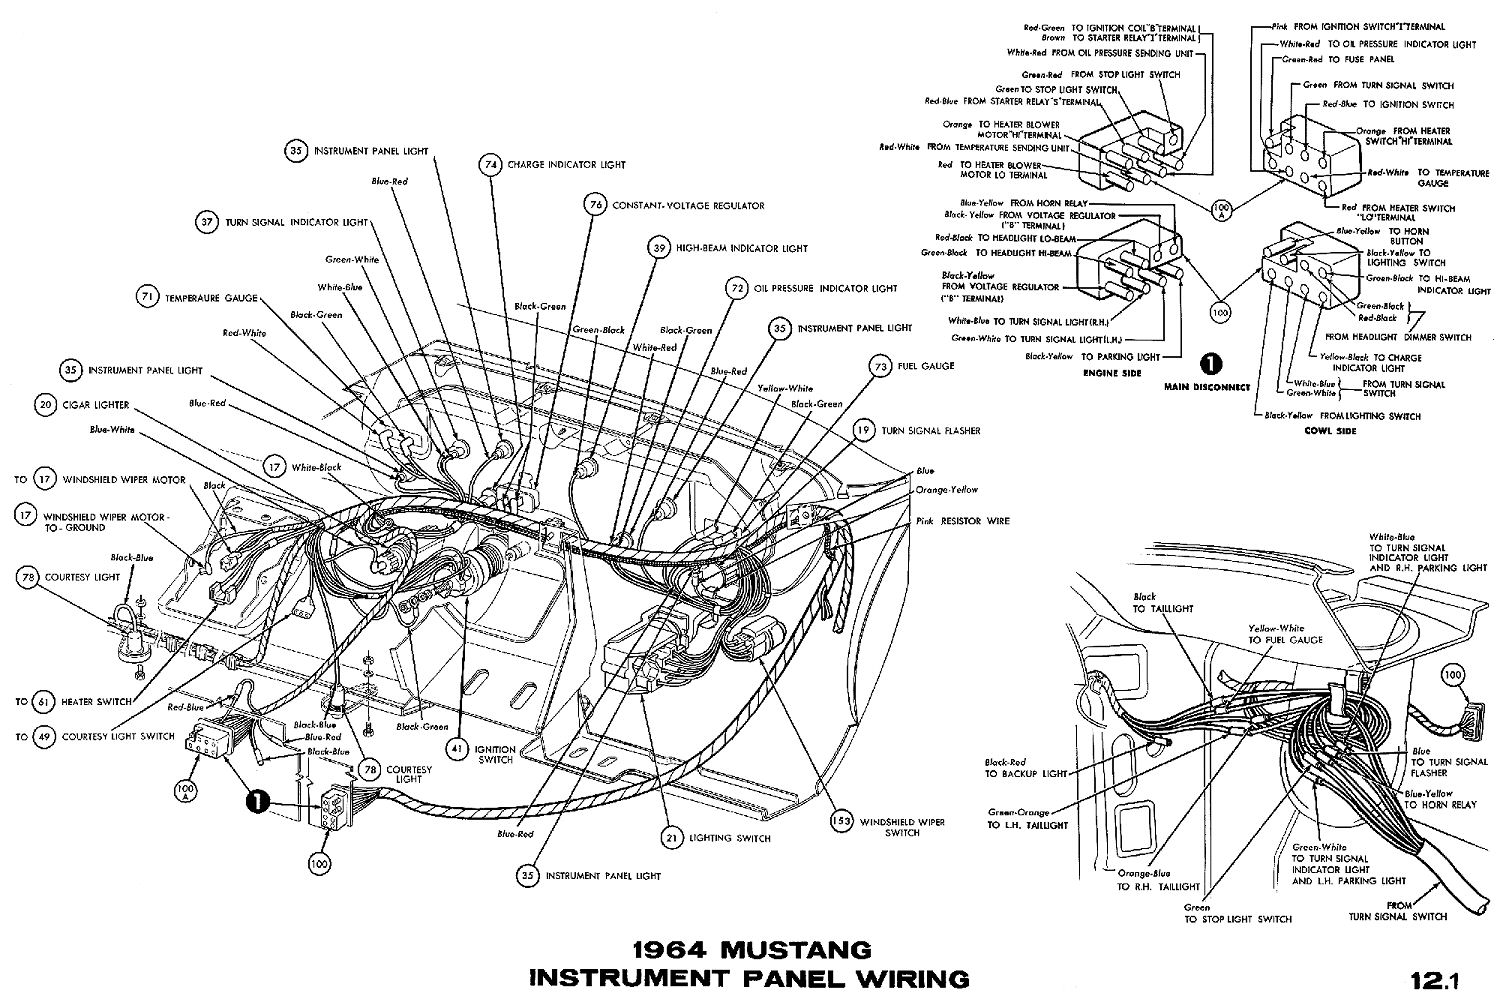 Pleasing 1964 Mustang Wiring Diagrams Average Joe Restoration Wiring 101 Archstreekradiomeanderfmnl